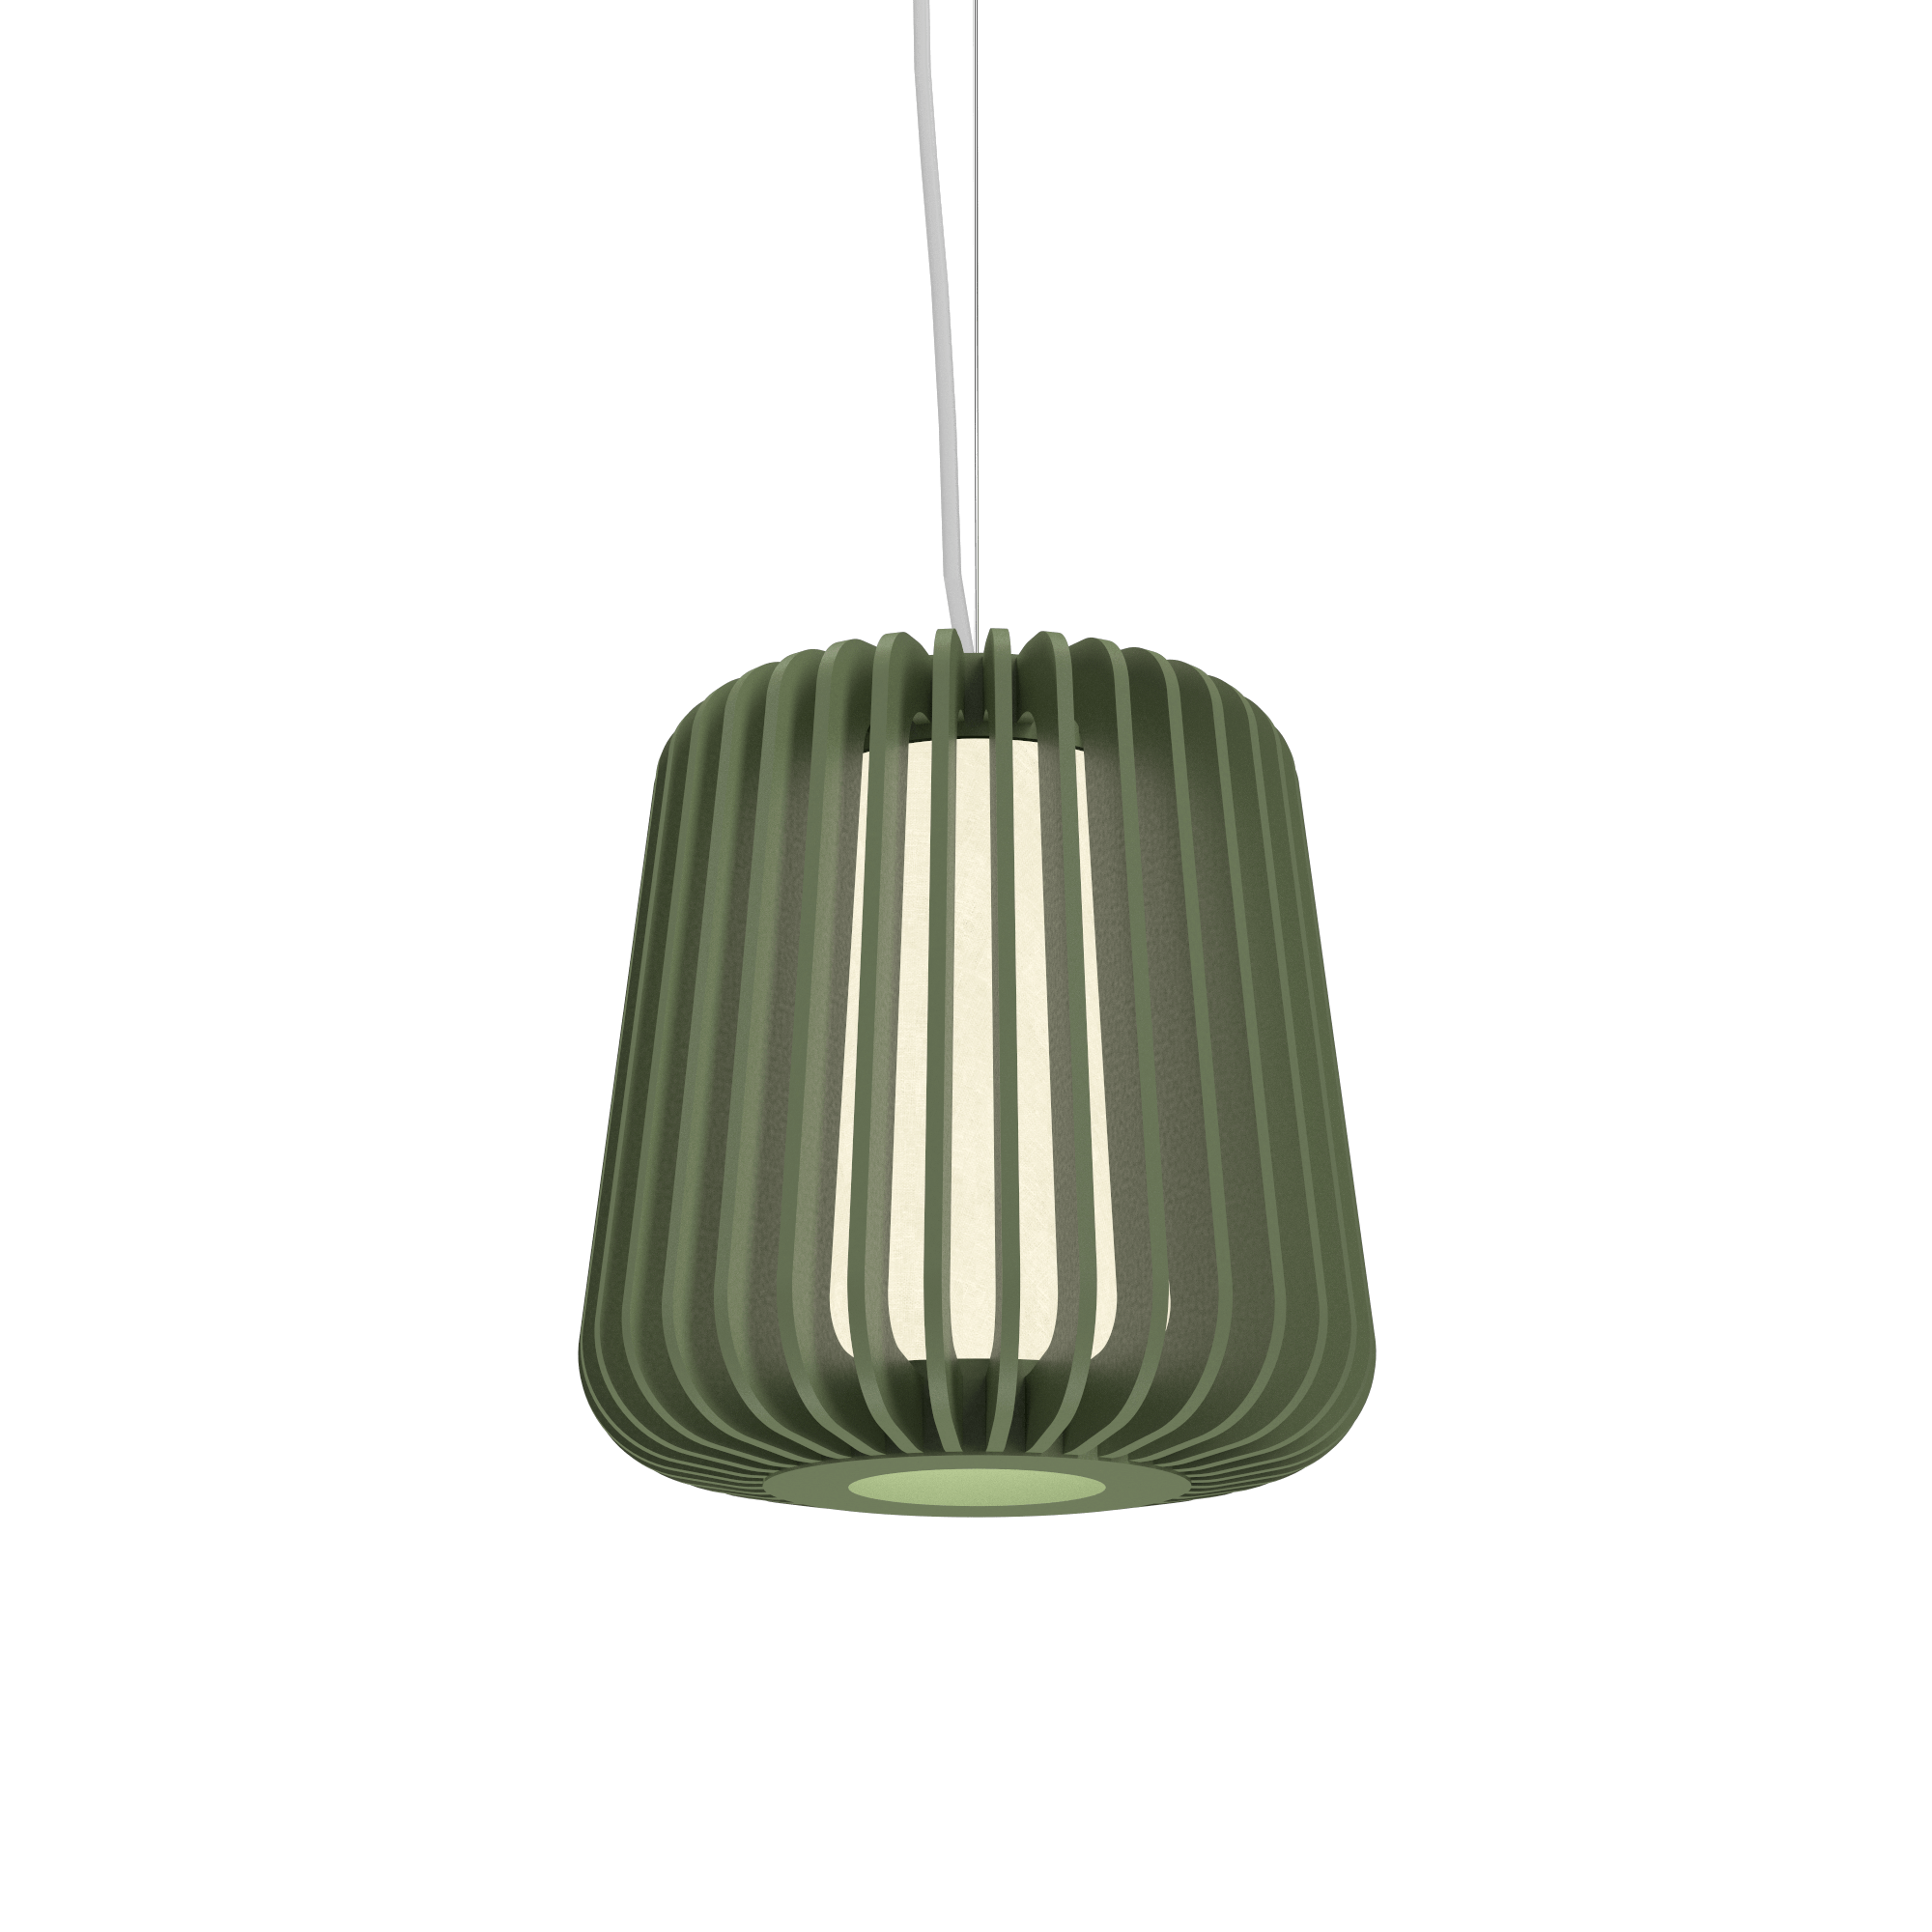 Pendant Lamp Accord Stecche Di Legno 1426 - Stecche Di Legno Line Accord Lighting | 30. Olive Green